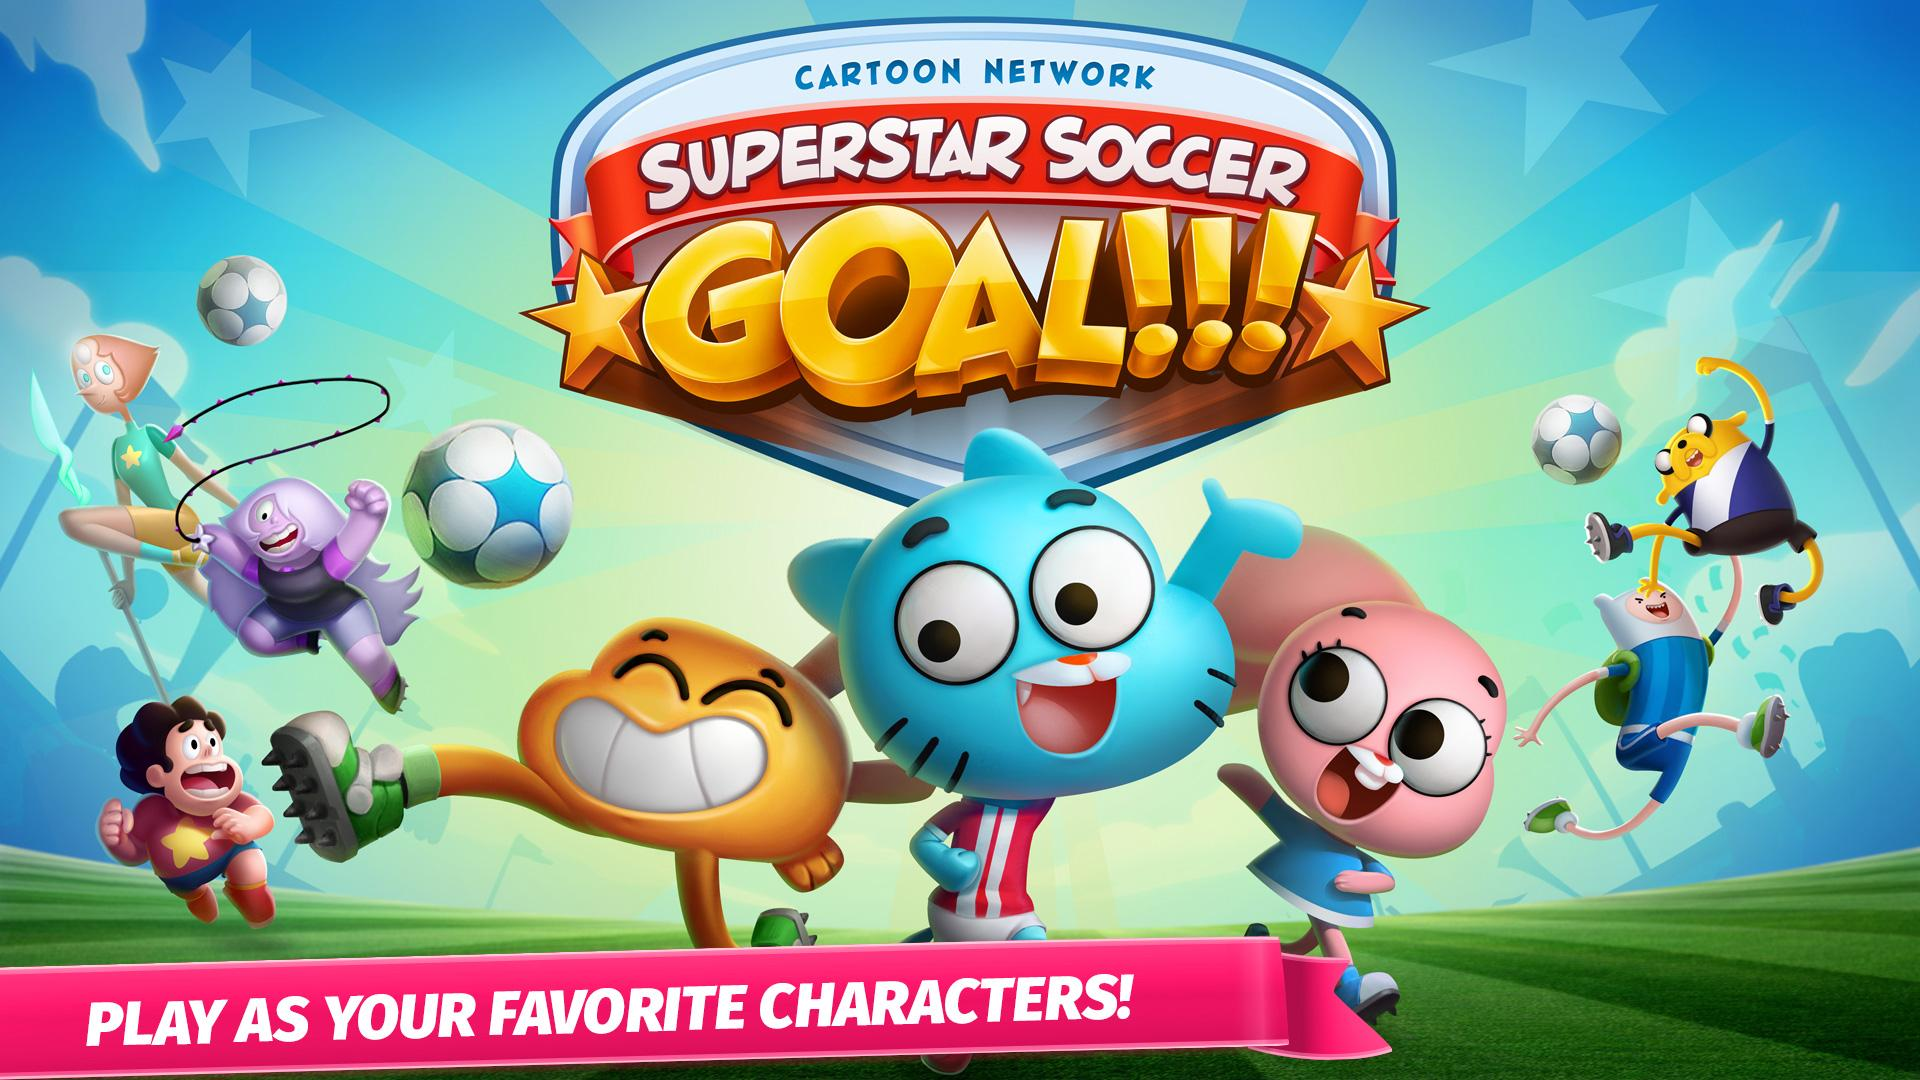 CN Superstar Soccer: Goal!!! screenshot #1